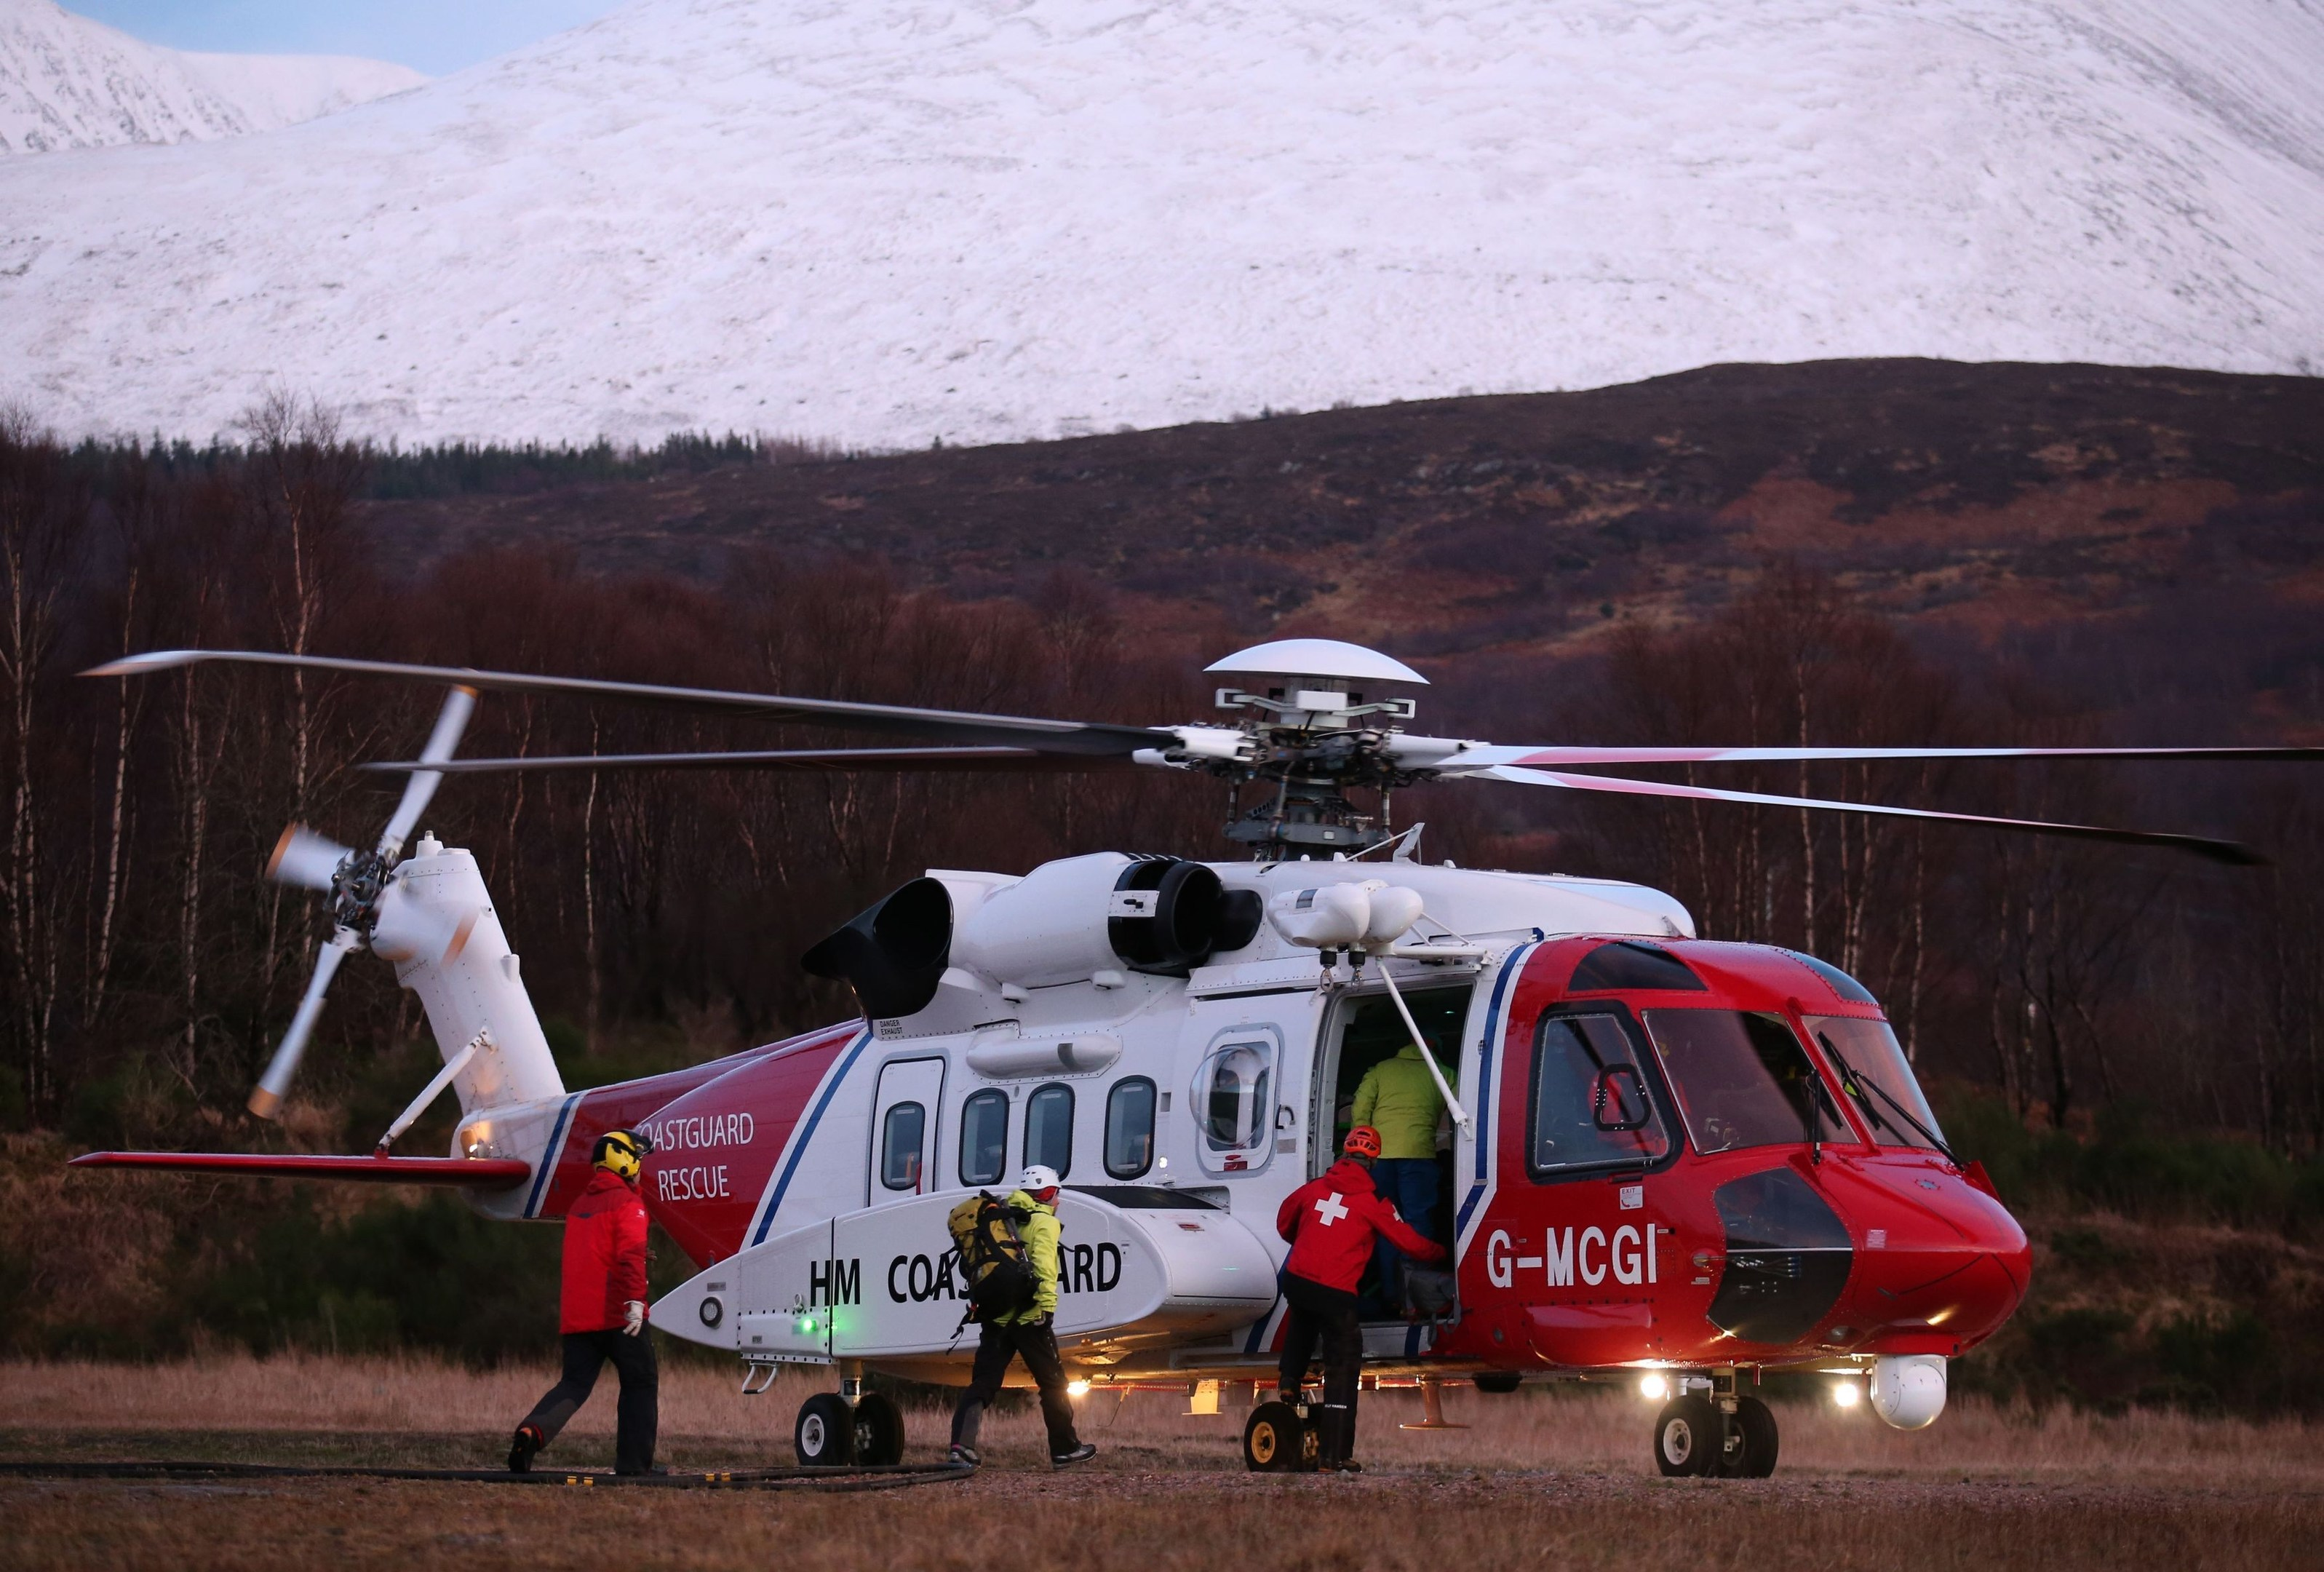 Members of the Lochaber Mountain Rescue team board a search and rescue helicopter after an avalanche in the. PRESS ASSOCIATION Photo. Picture date: Wednesday February 17, 2016. See PA story POLICE Avalanche. Photo credit should read: Andrew Milligan/PA Wire